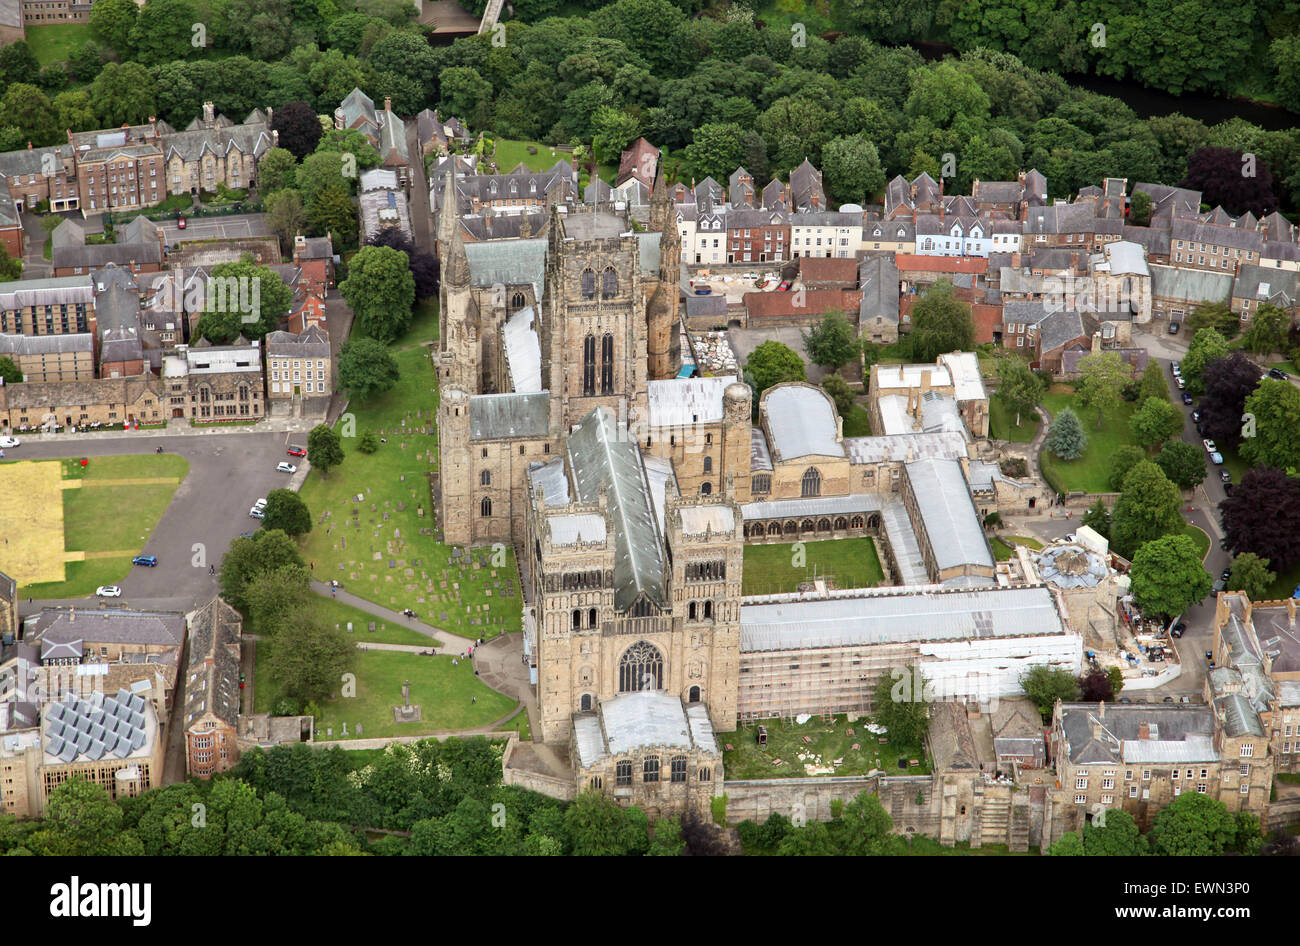 aerial view of Durham Cathedral and University, UK - Stock Image